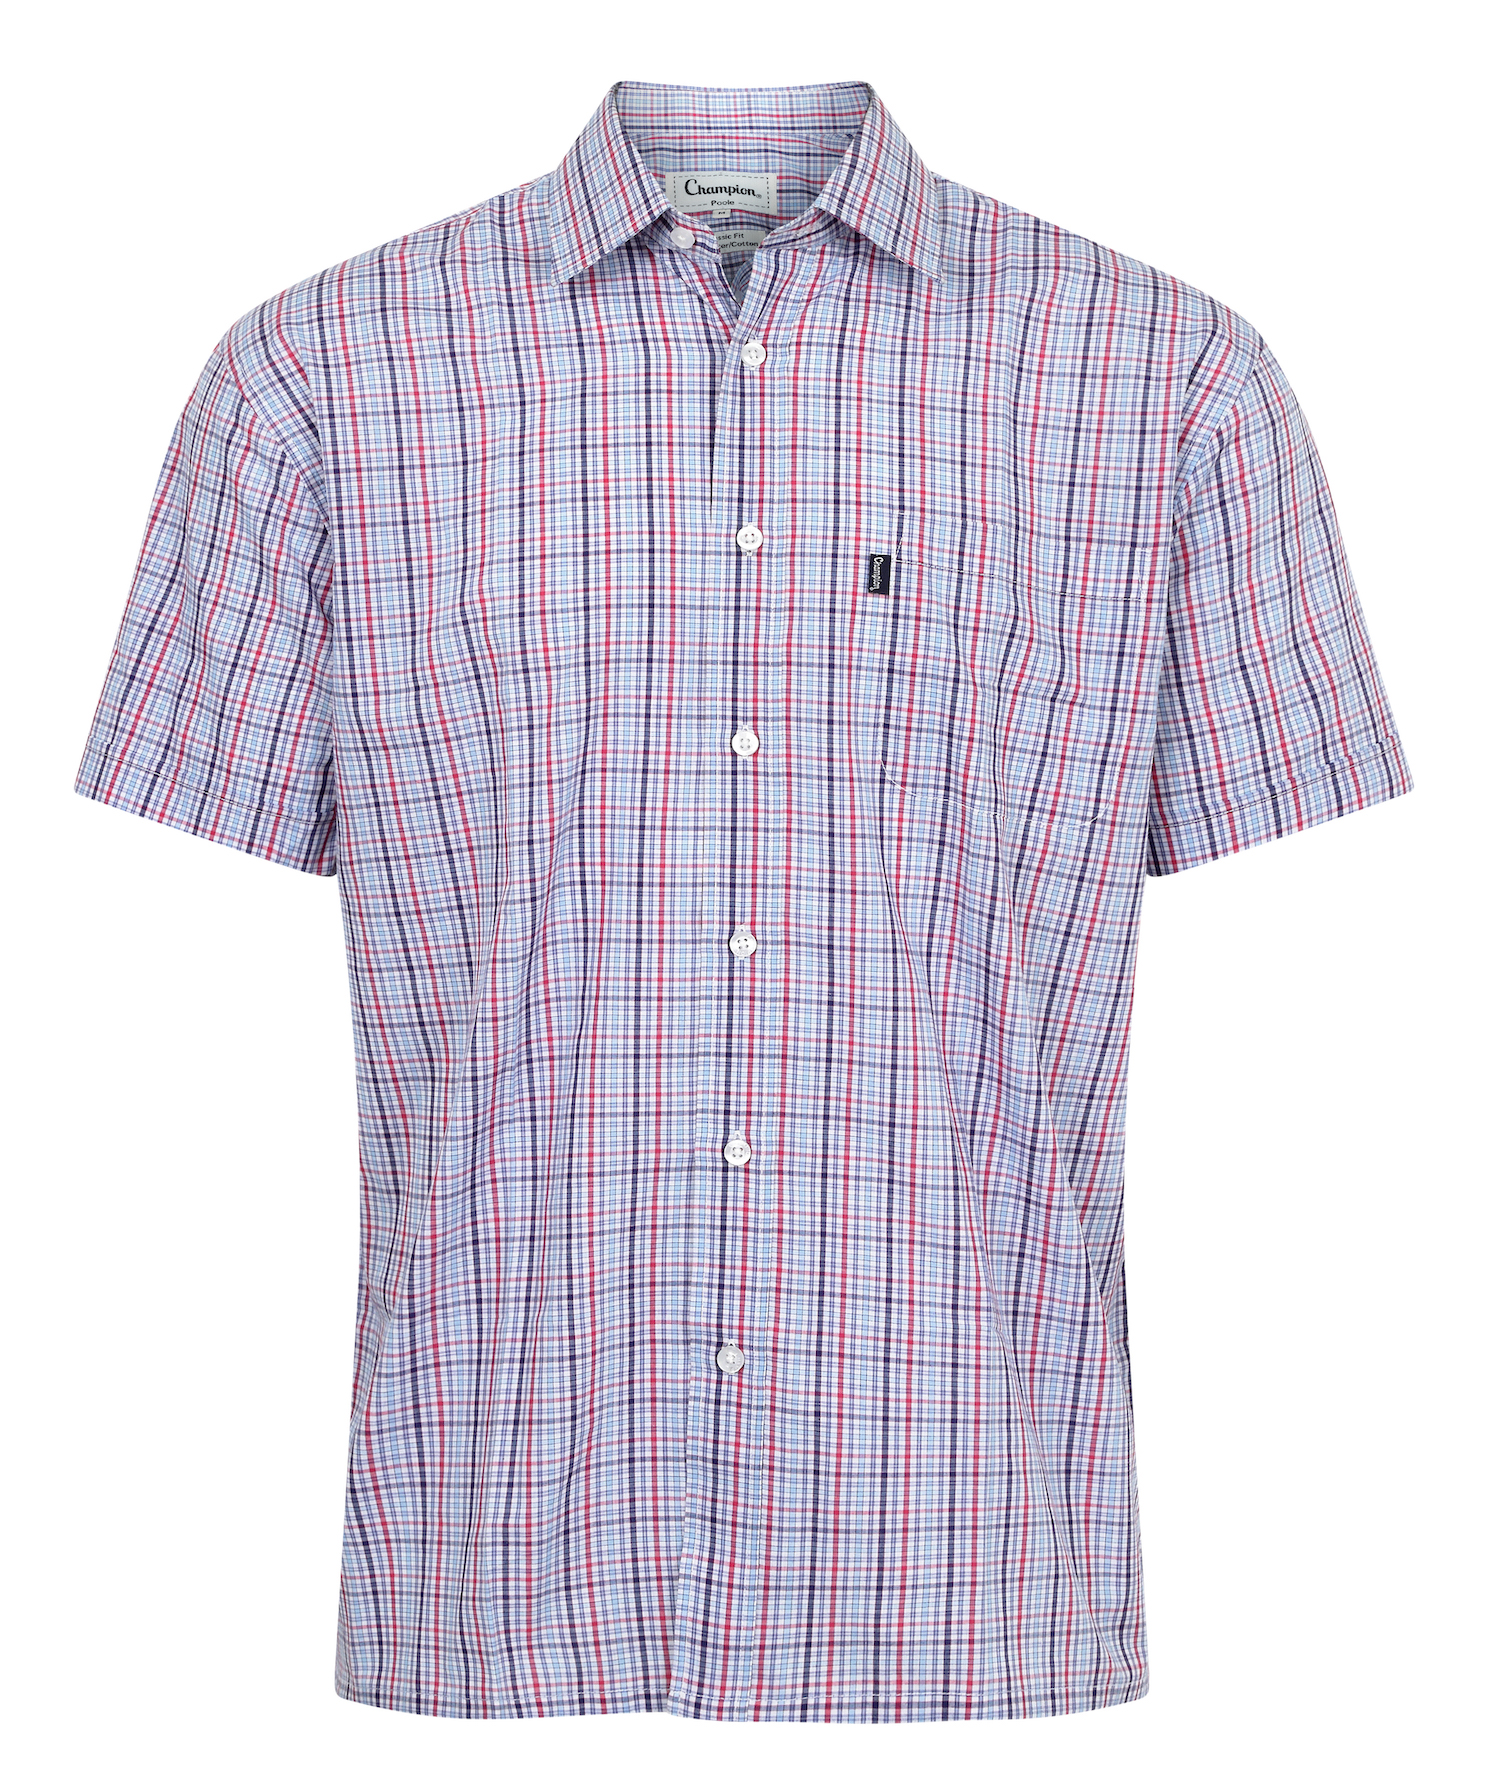 Champion Poole Short Sleeve Shirt Red